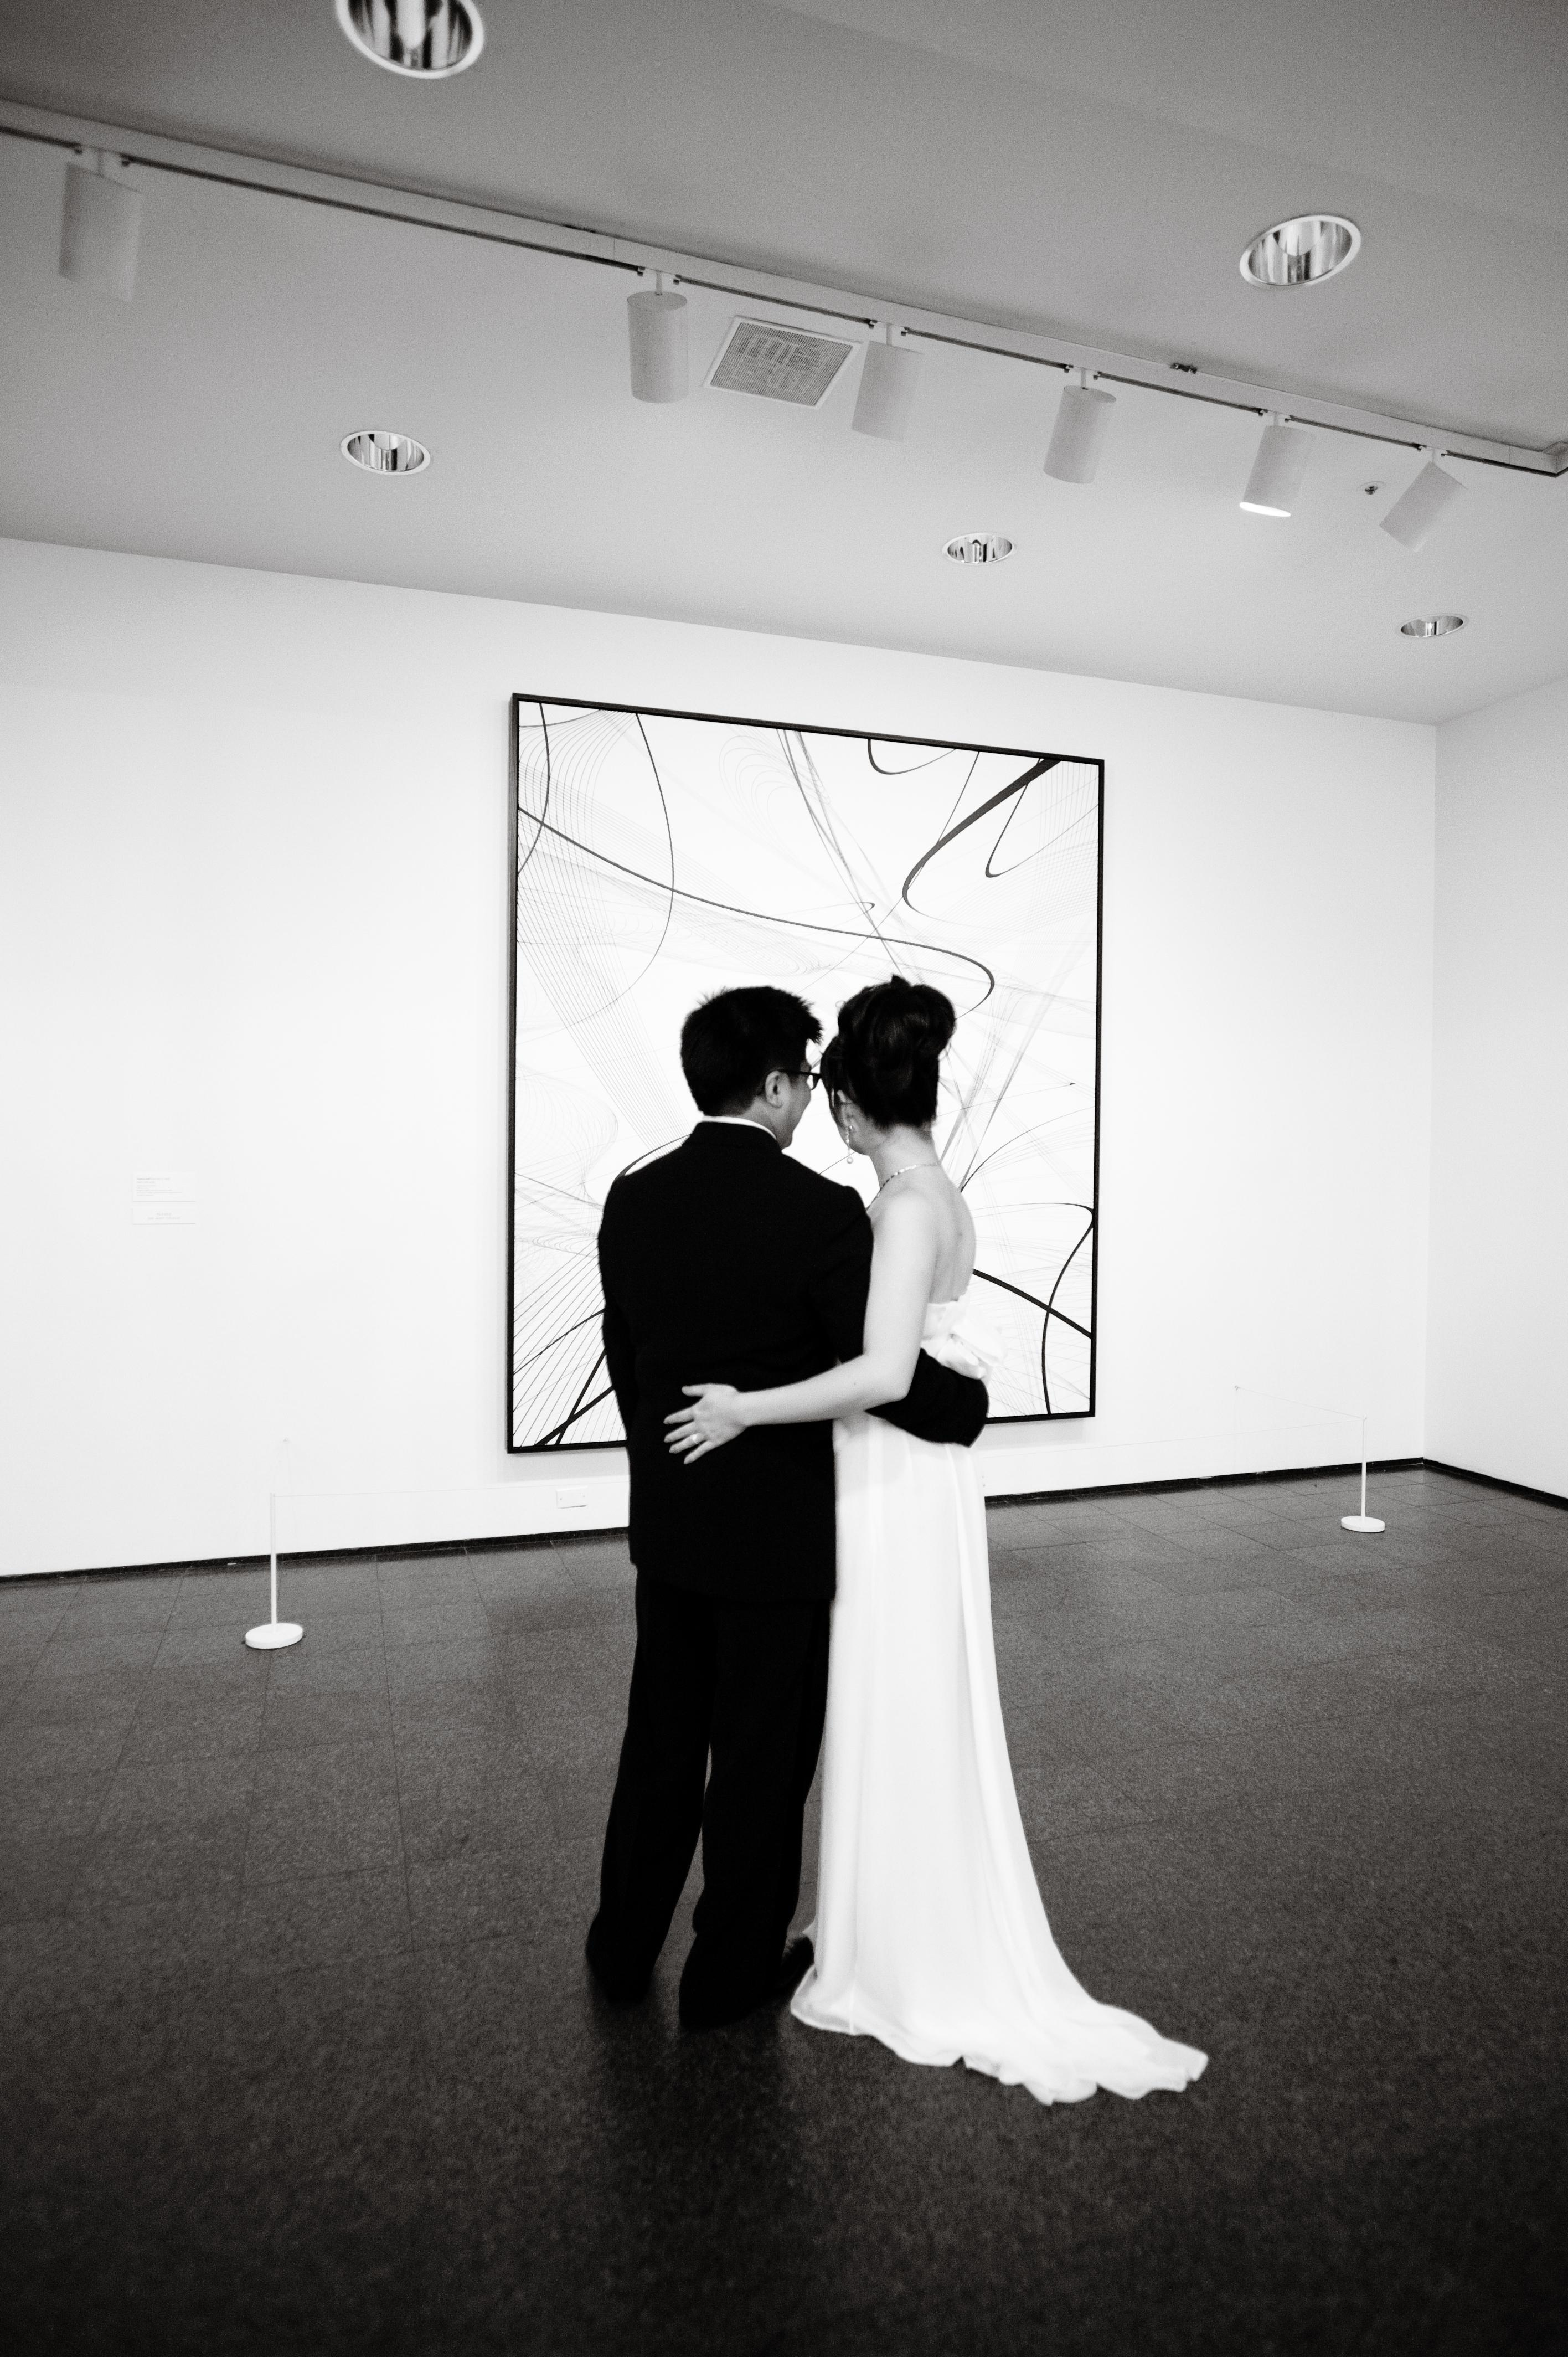 A bride and groom embrace in front of an artwork, with their backs to the camera.